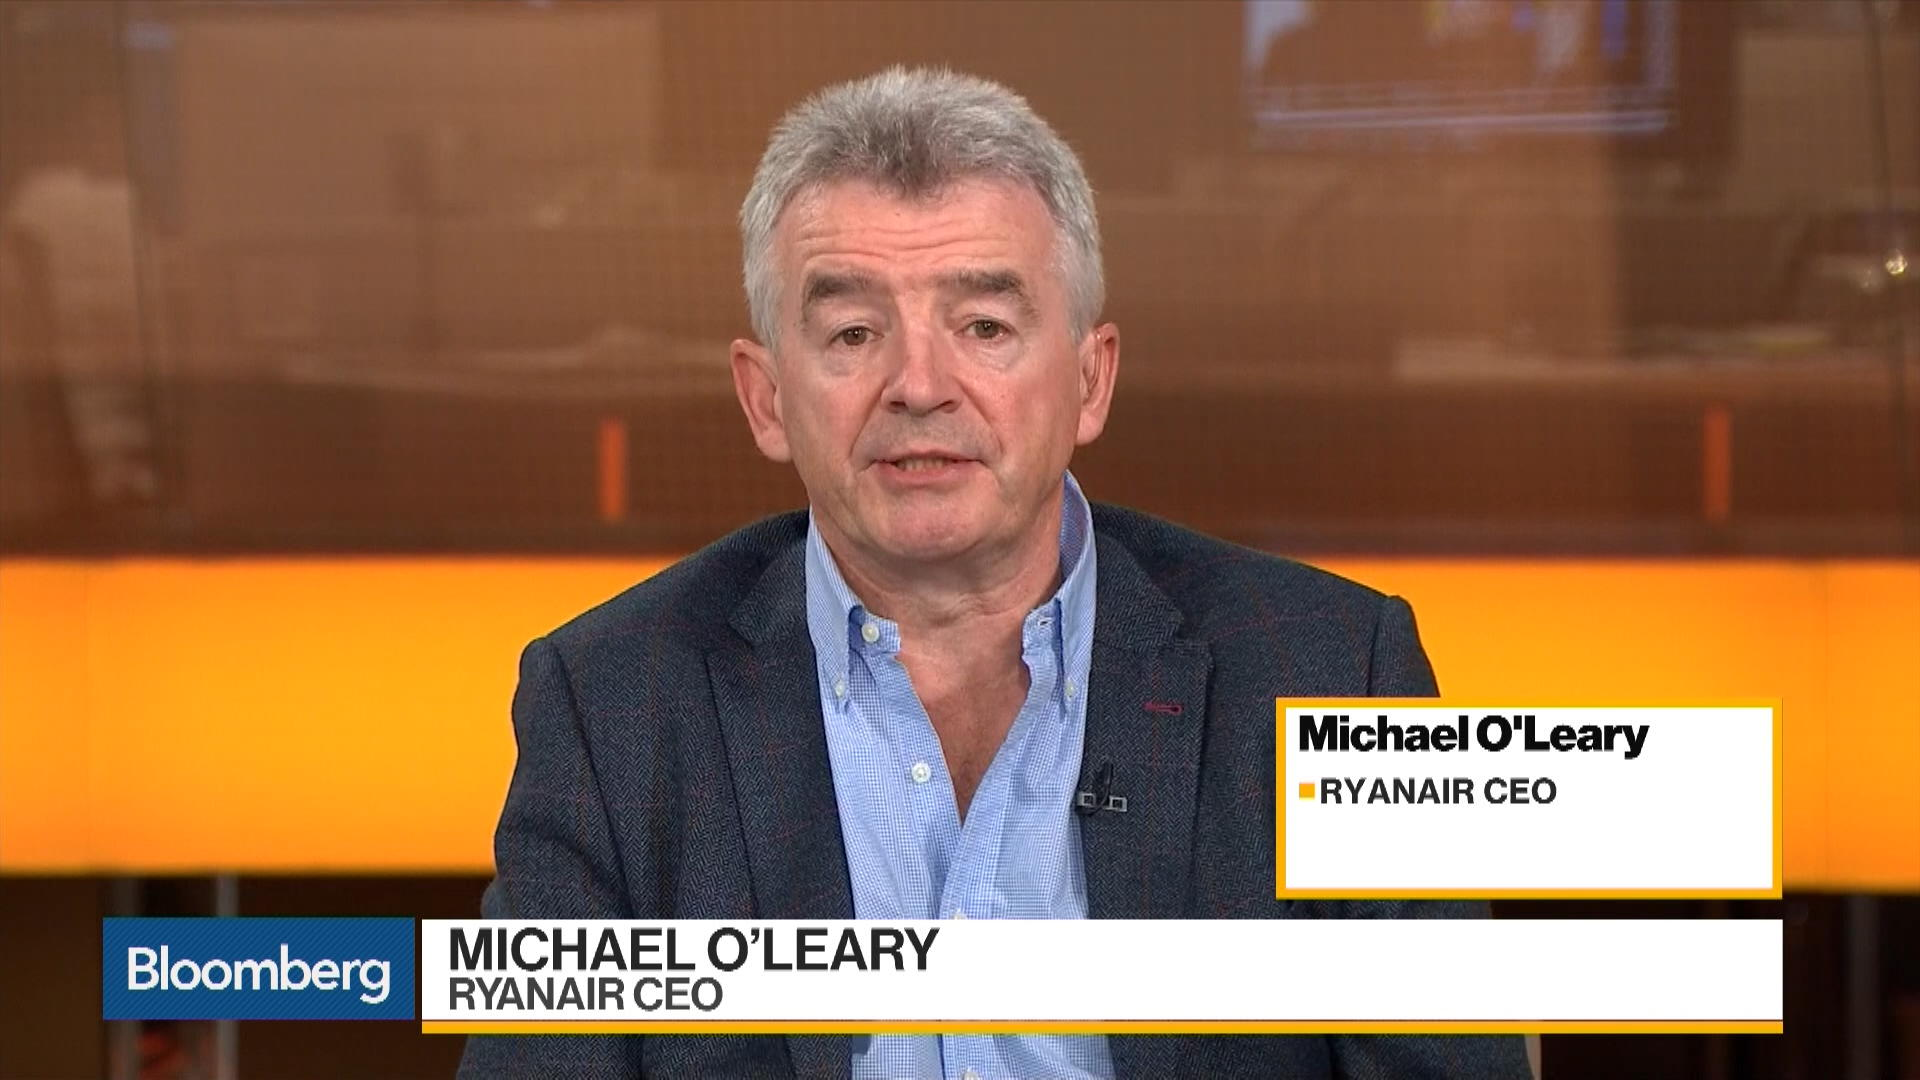 O'Leary discusses earnings oil prices expansion merger plans and Brexit